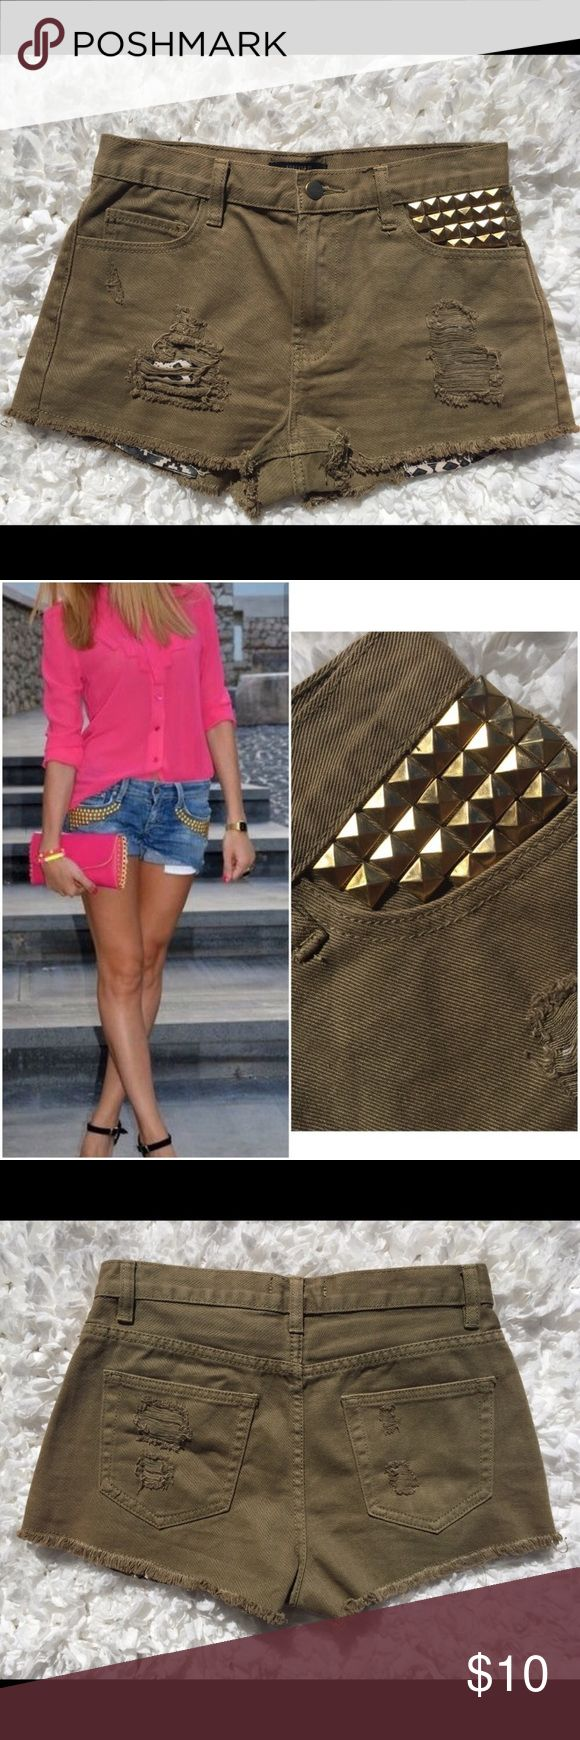 Khaki High Waist Gold Studded Pocket Tribal Shorts Olive Khaki High Waist Gold Studded Pocket Tribal Shorts. These cute shorts have a destroyed theme and a tribal/Aztec print under the ripped part. Cute with a loose tee and boots! Can be styled SO many ways! Listing them as 'Green' because they are close to an 'Olive' color. Style photo is not mine and is for style purposes only. 0409173250pc Forever 21 Shorts